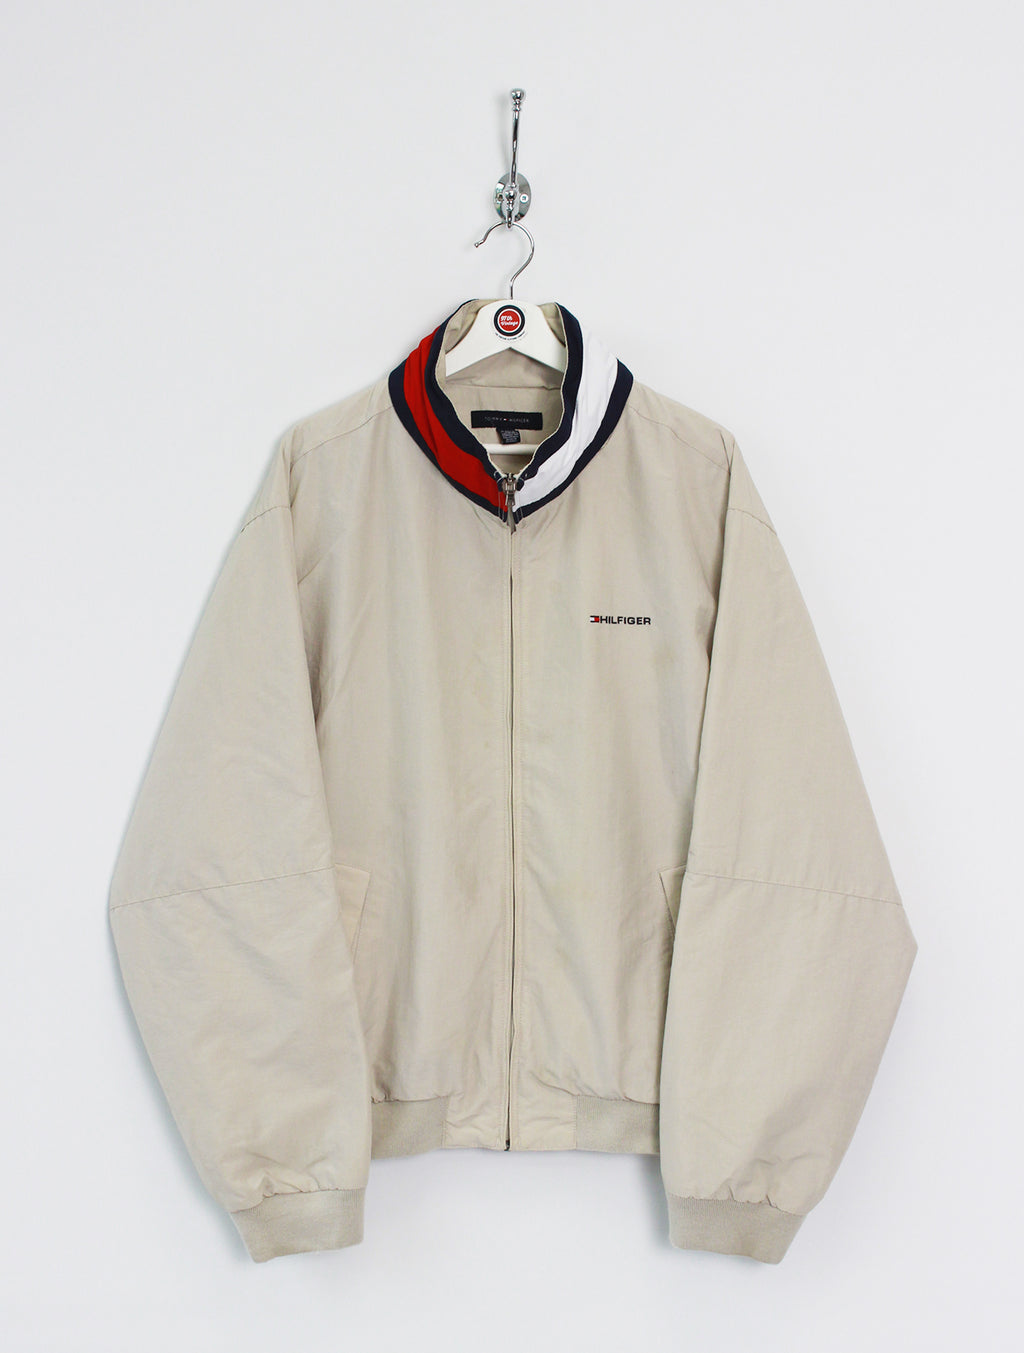 Tommy Hilfiger Jacket (XL)